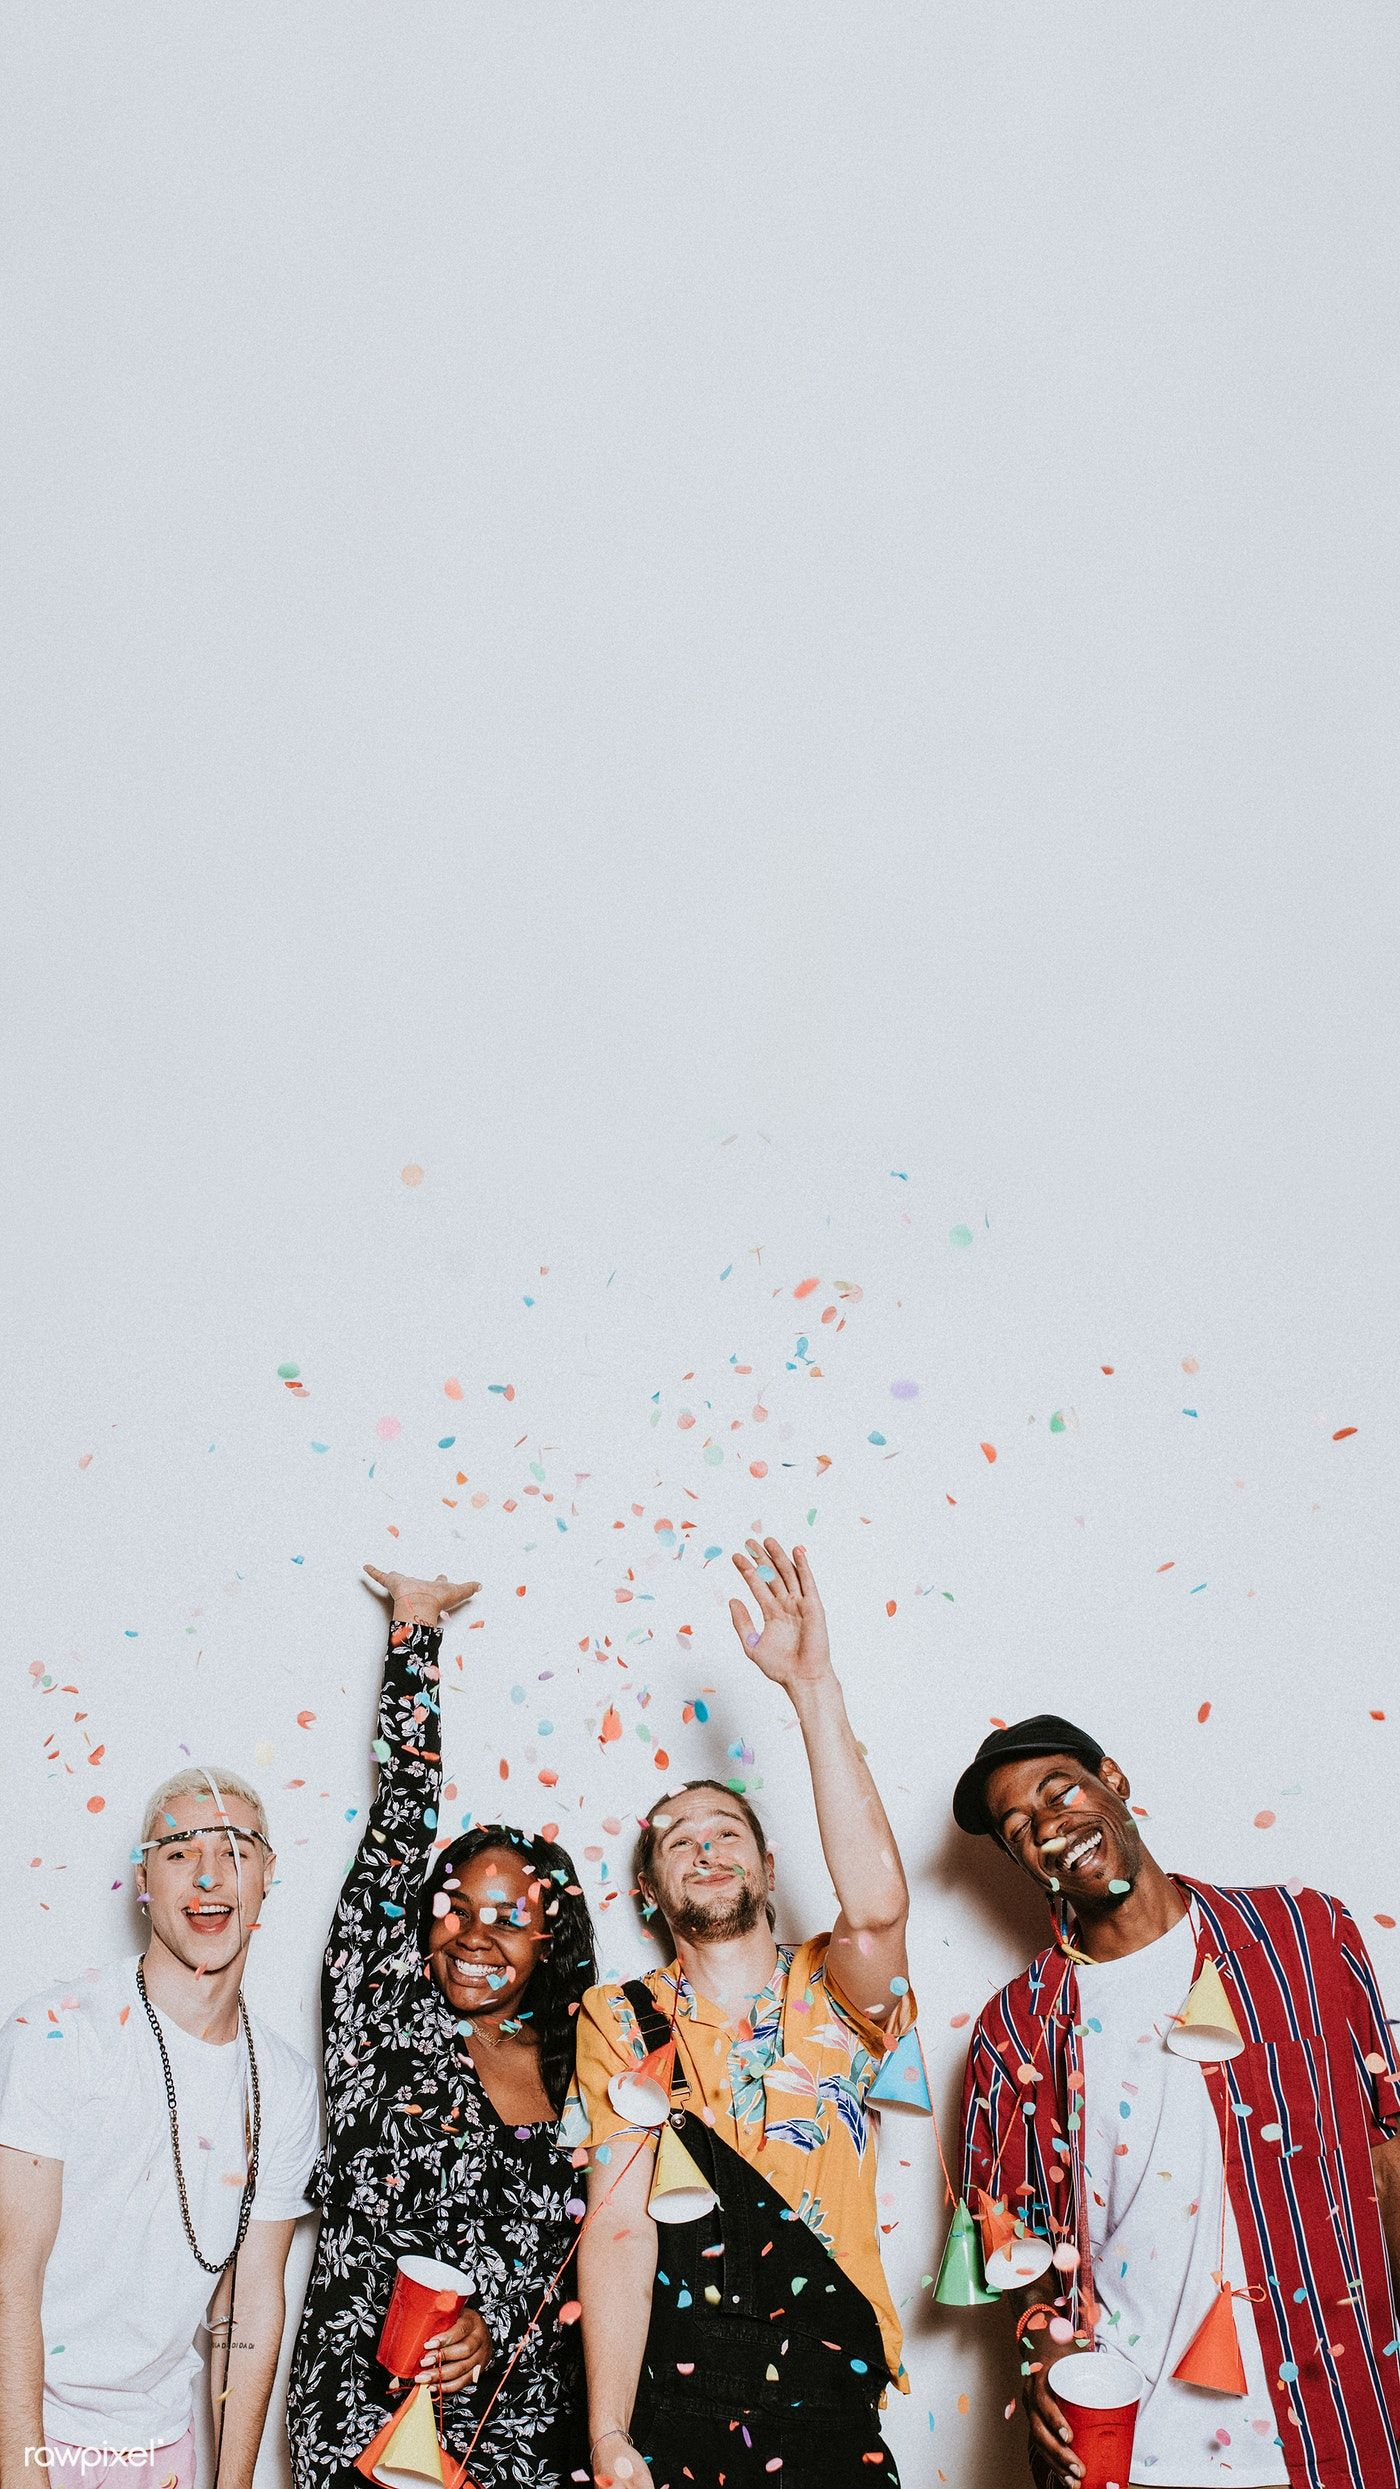 A group of diverse friends celebrating at a party | premium image by rawpixel.com / Felix